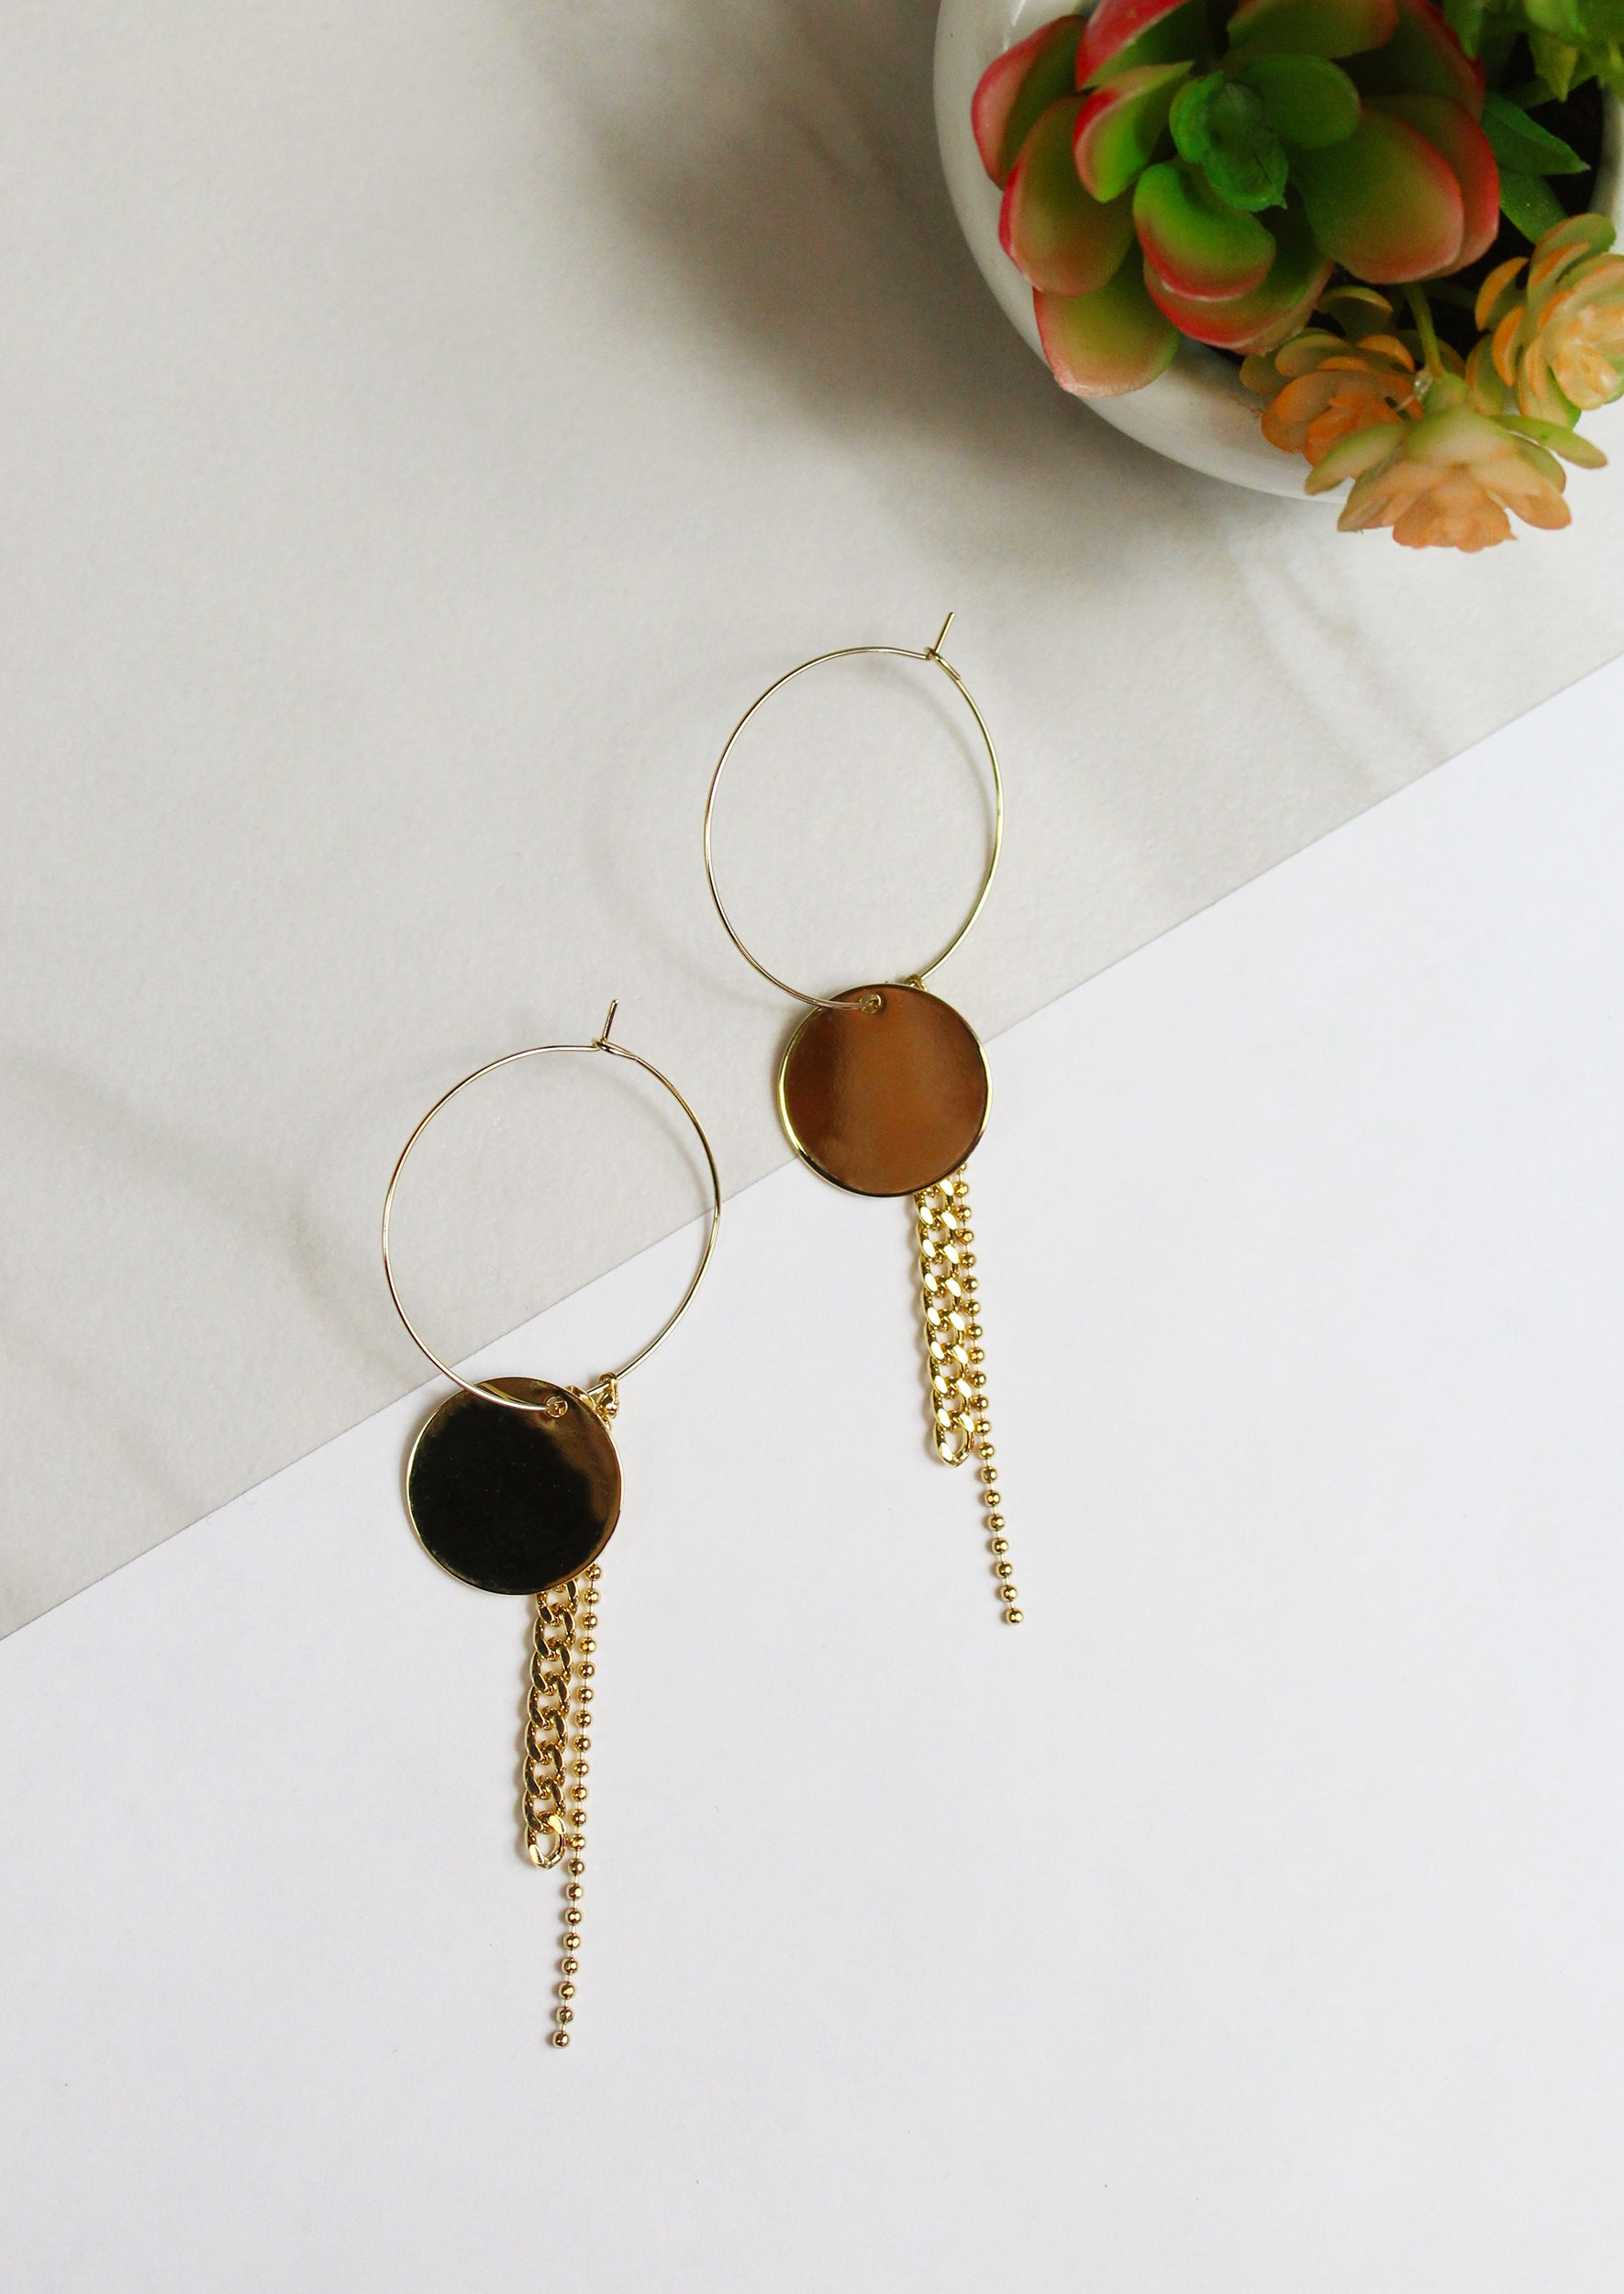 14K gold plated hoop earring featuring fringe chain on round plate